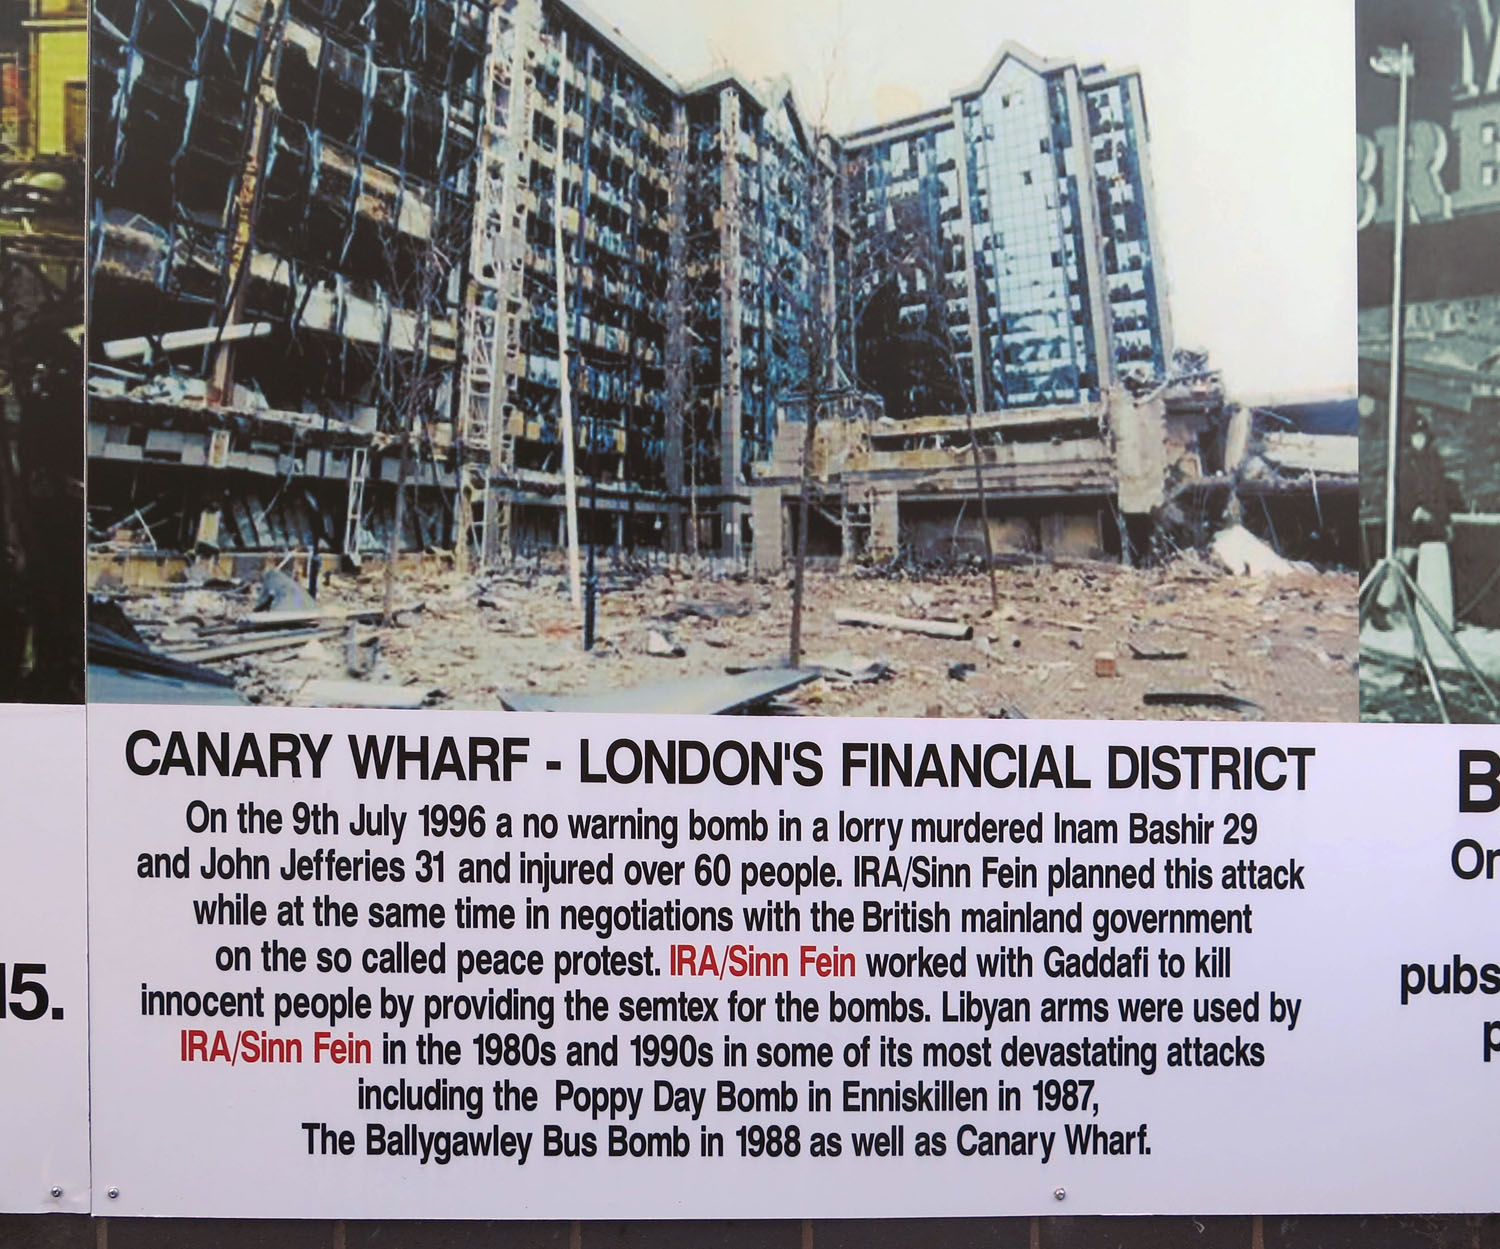 Northern-Ireland-Belfast-The-Troubles-Loyalist-Remembrance-IRA-Bombing-Canary-Wharf